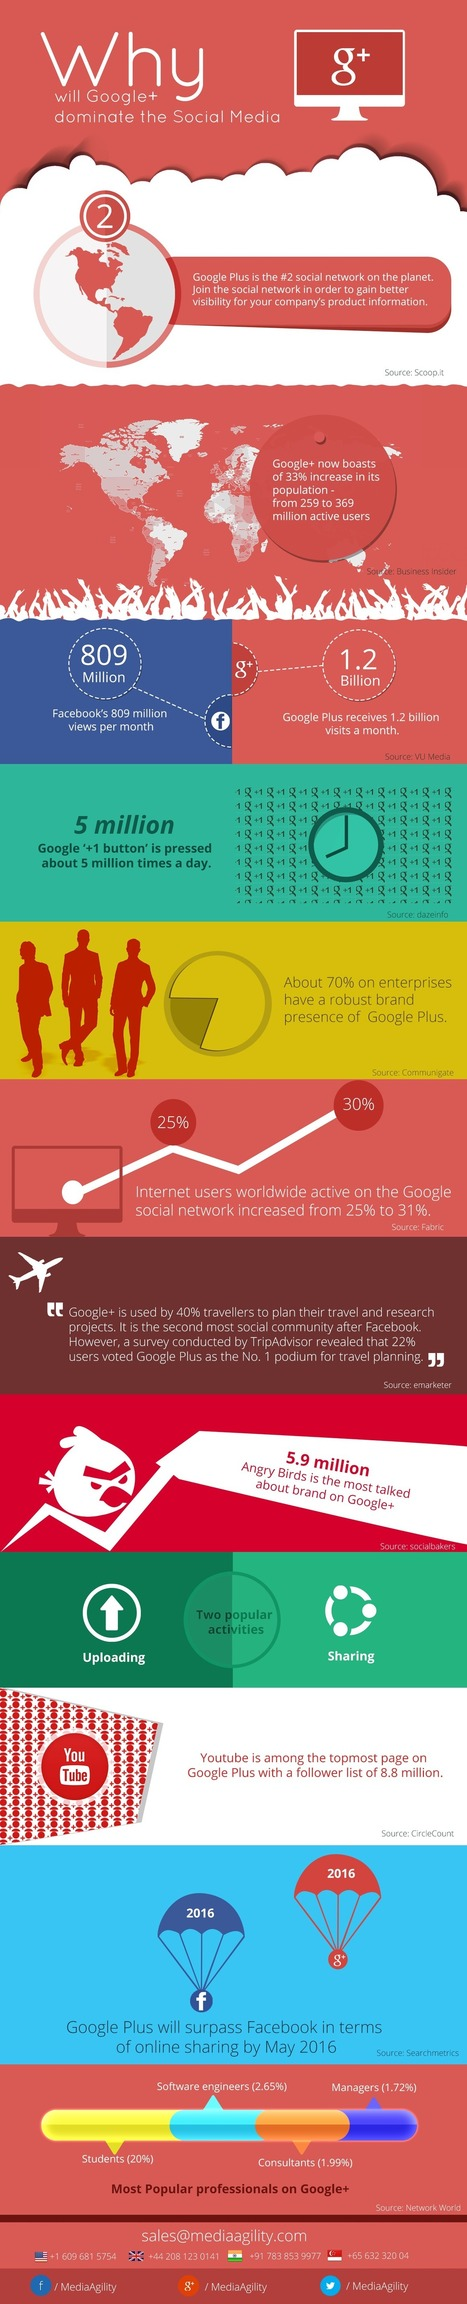 Why will Google+ dominate the Social Media - Ignite Your Moonshots | MediaAgility | MediaAgility | Scoop.it